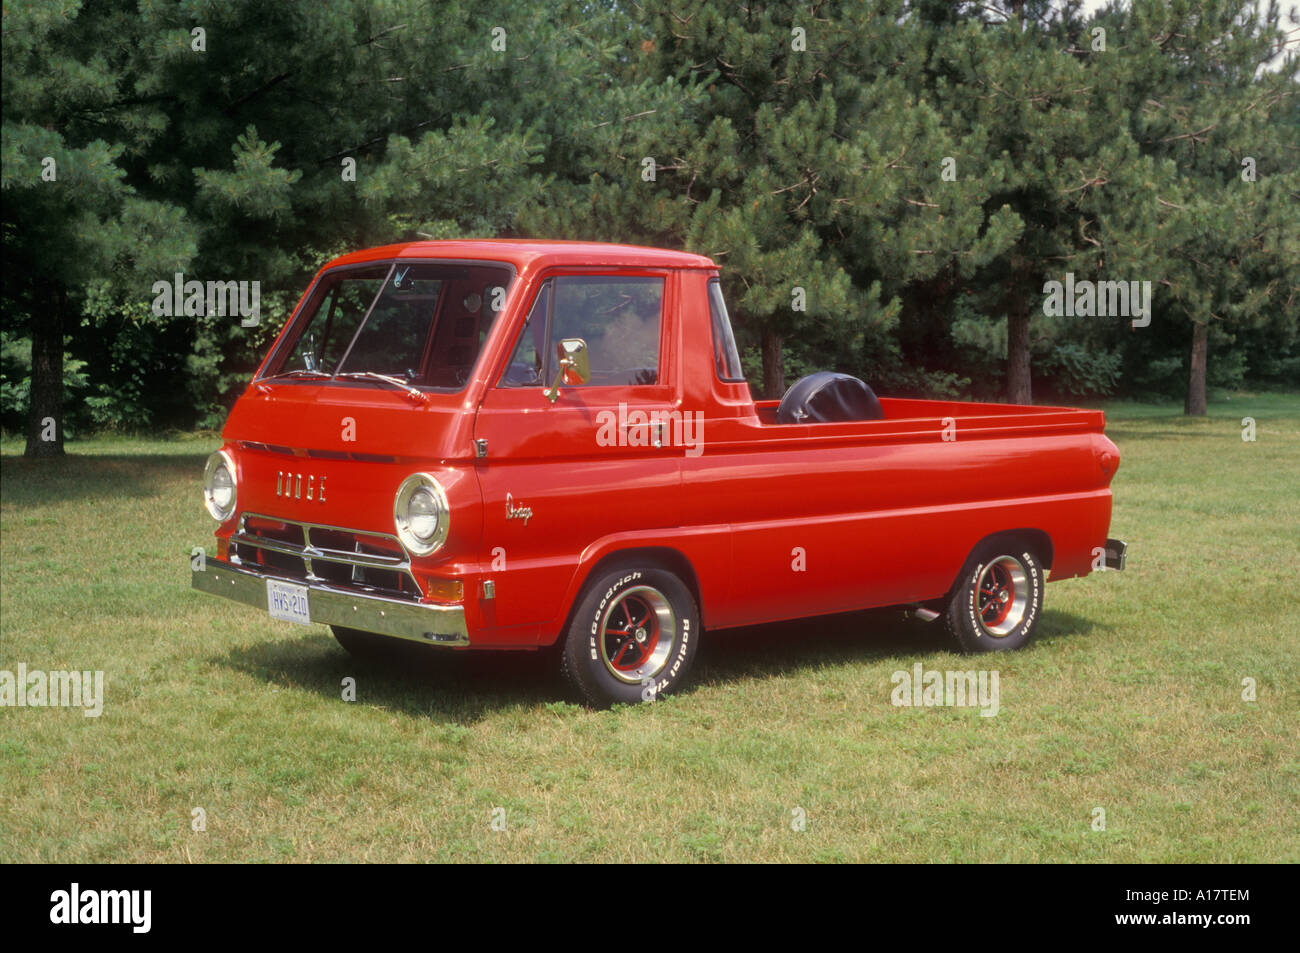 1966 dodge a 100 compact pick up truck on grass stock photo 1966 dodge a 100 compact pick up truck on grass publicscrutiny Choice Image